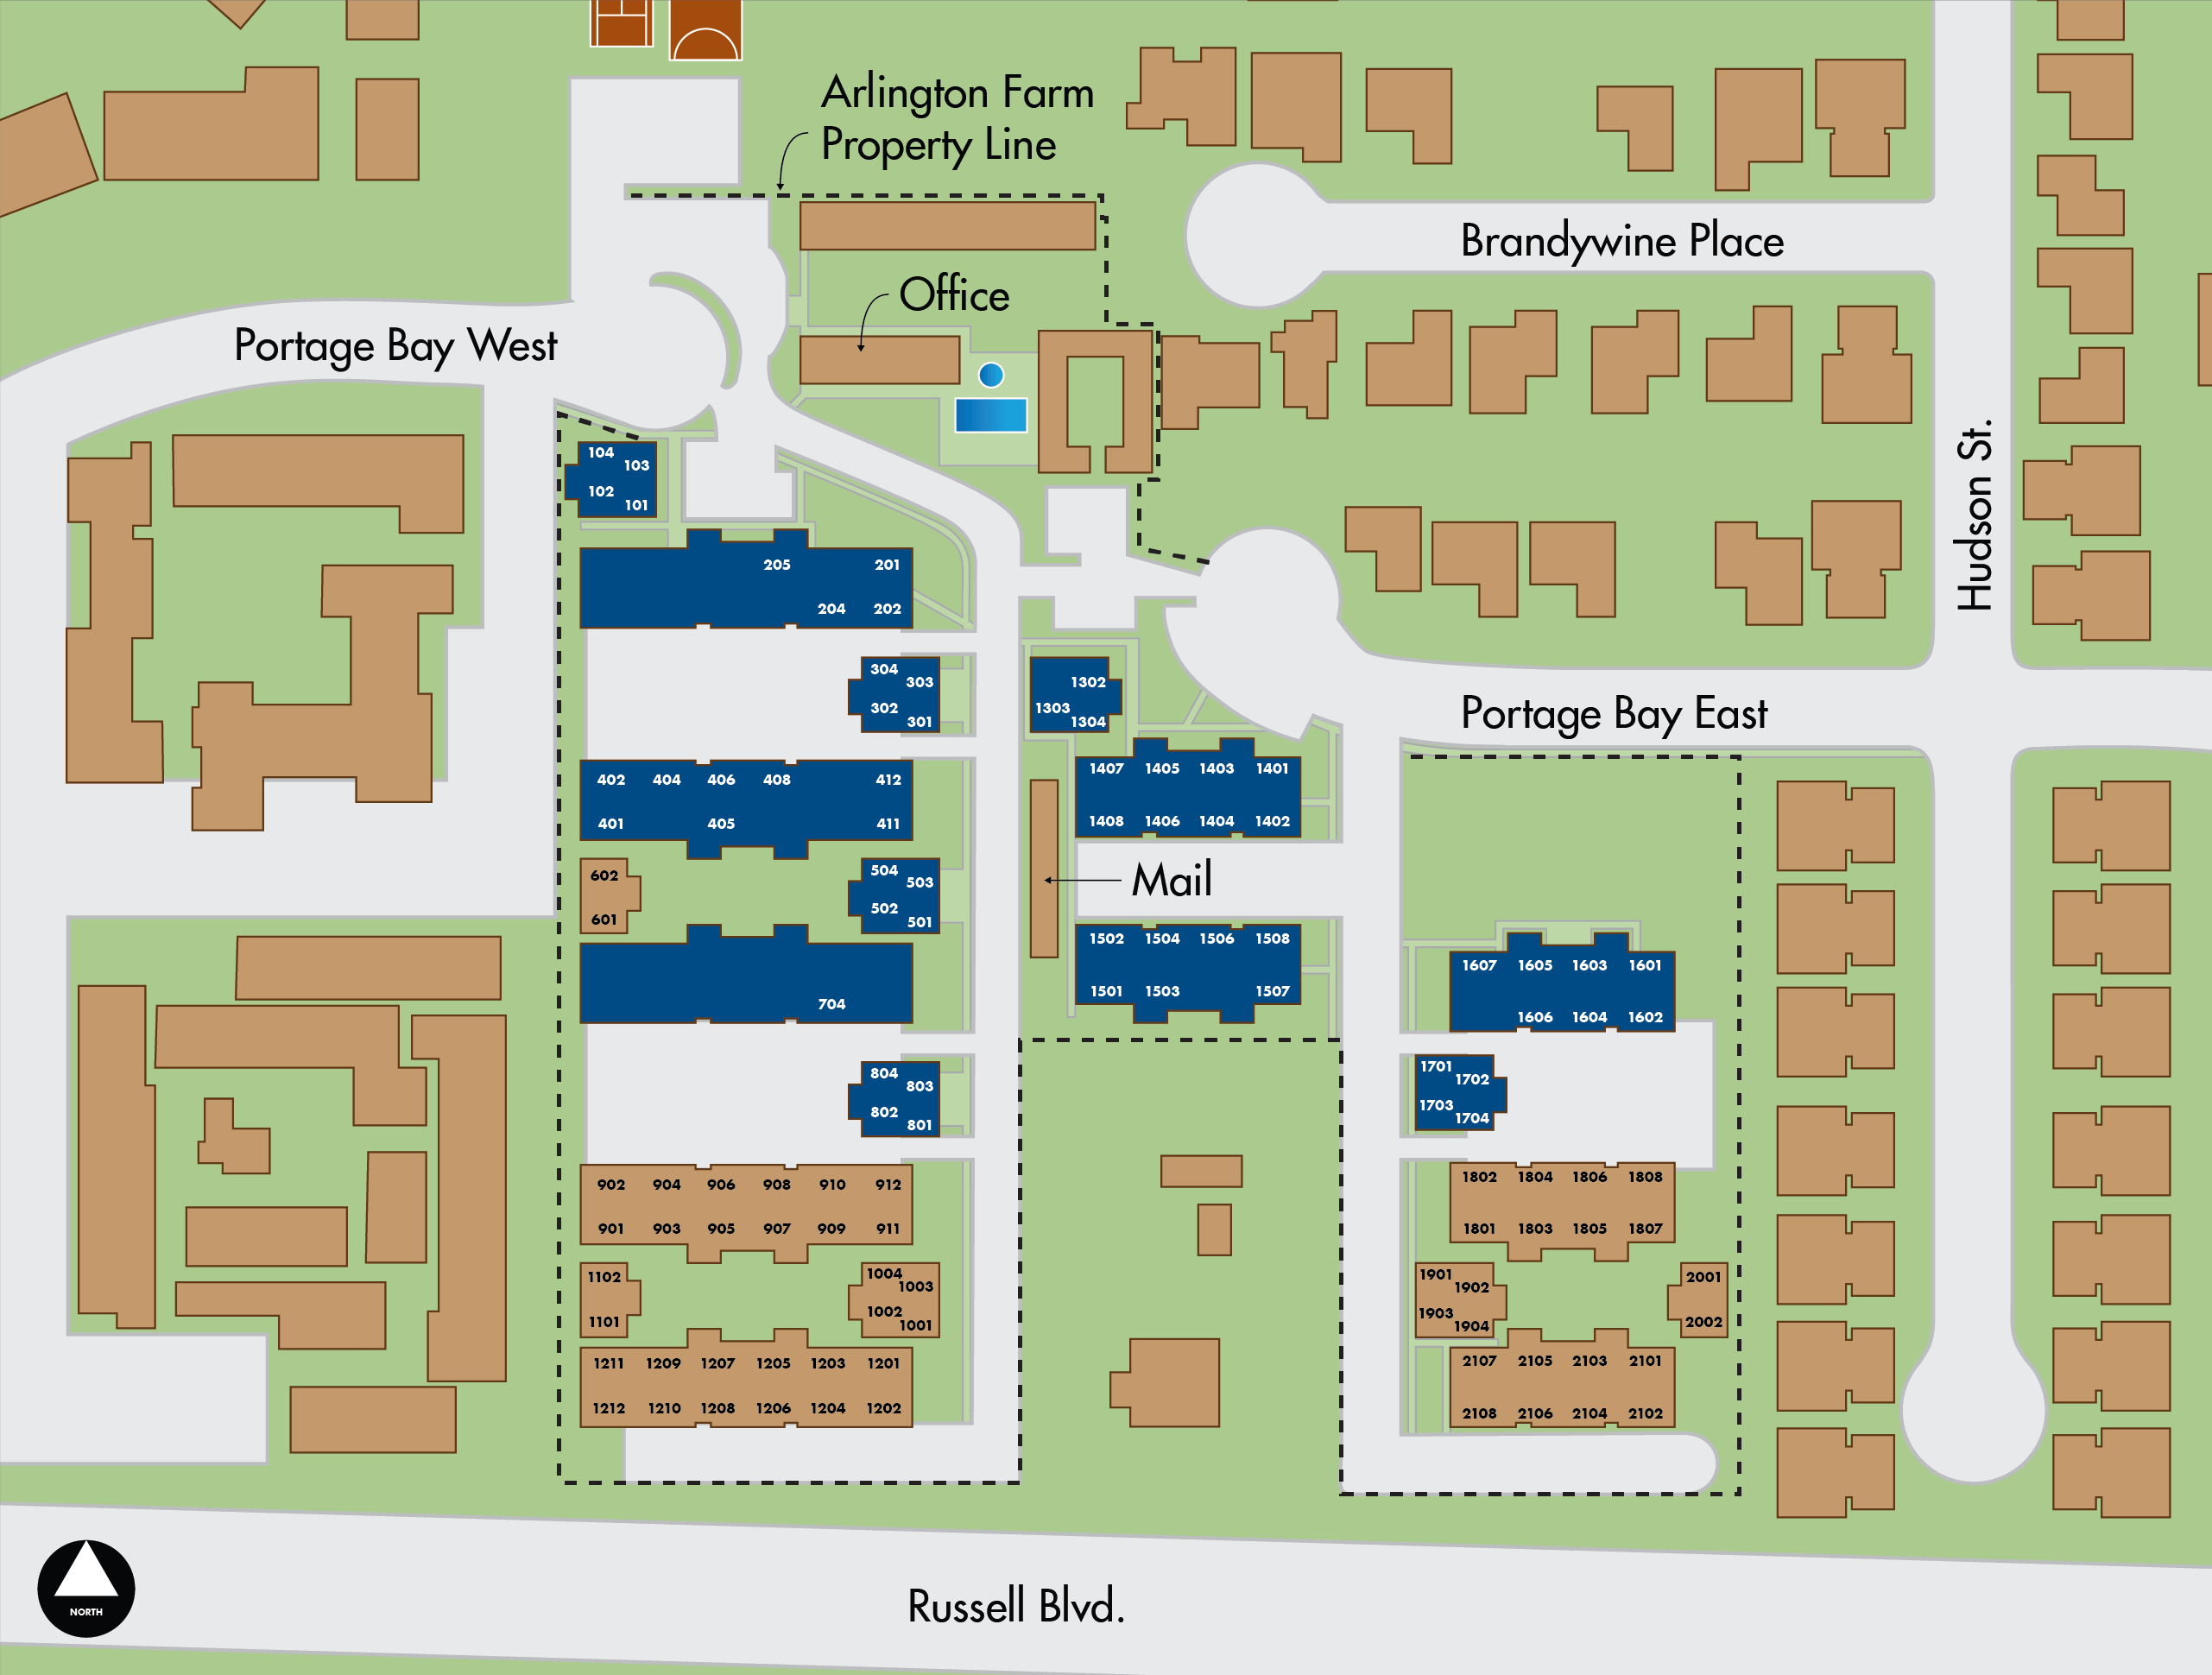 Map of Arlington Farm apartments